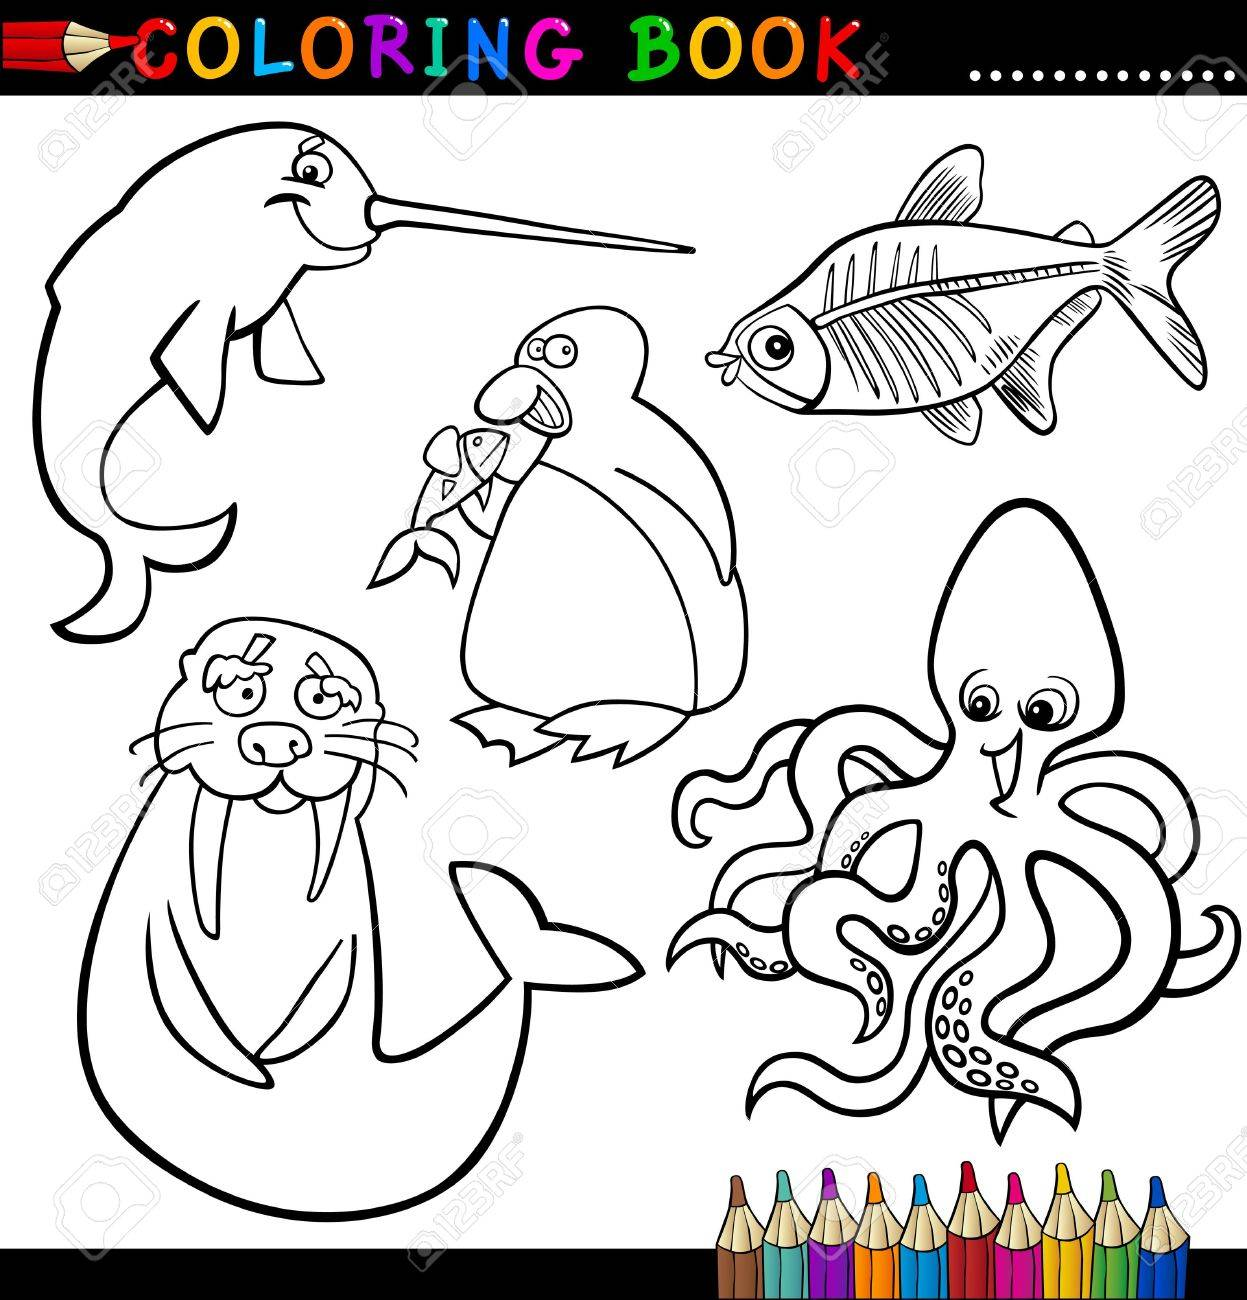 X ray coloring pages - X Ray Cartoon Coloring Book Or Page Cartoon Illustration Of Funny Marine And Polar Animals